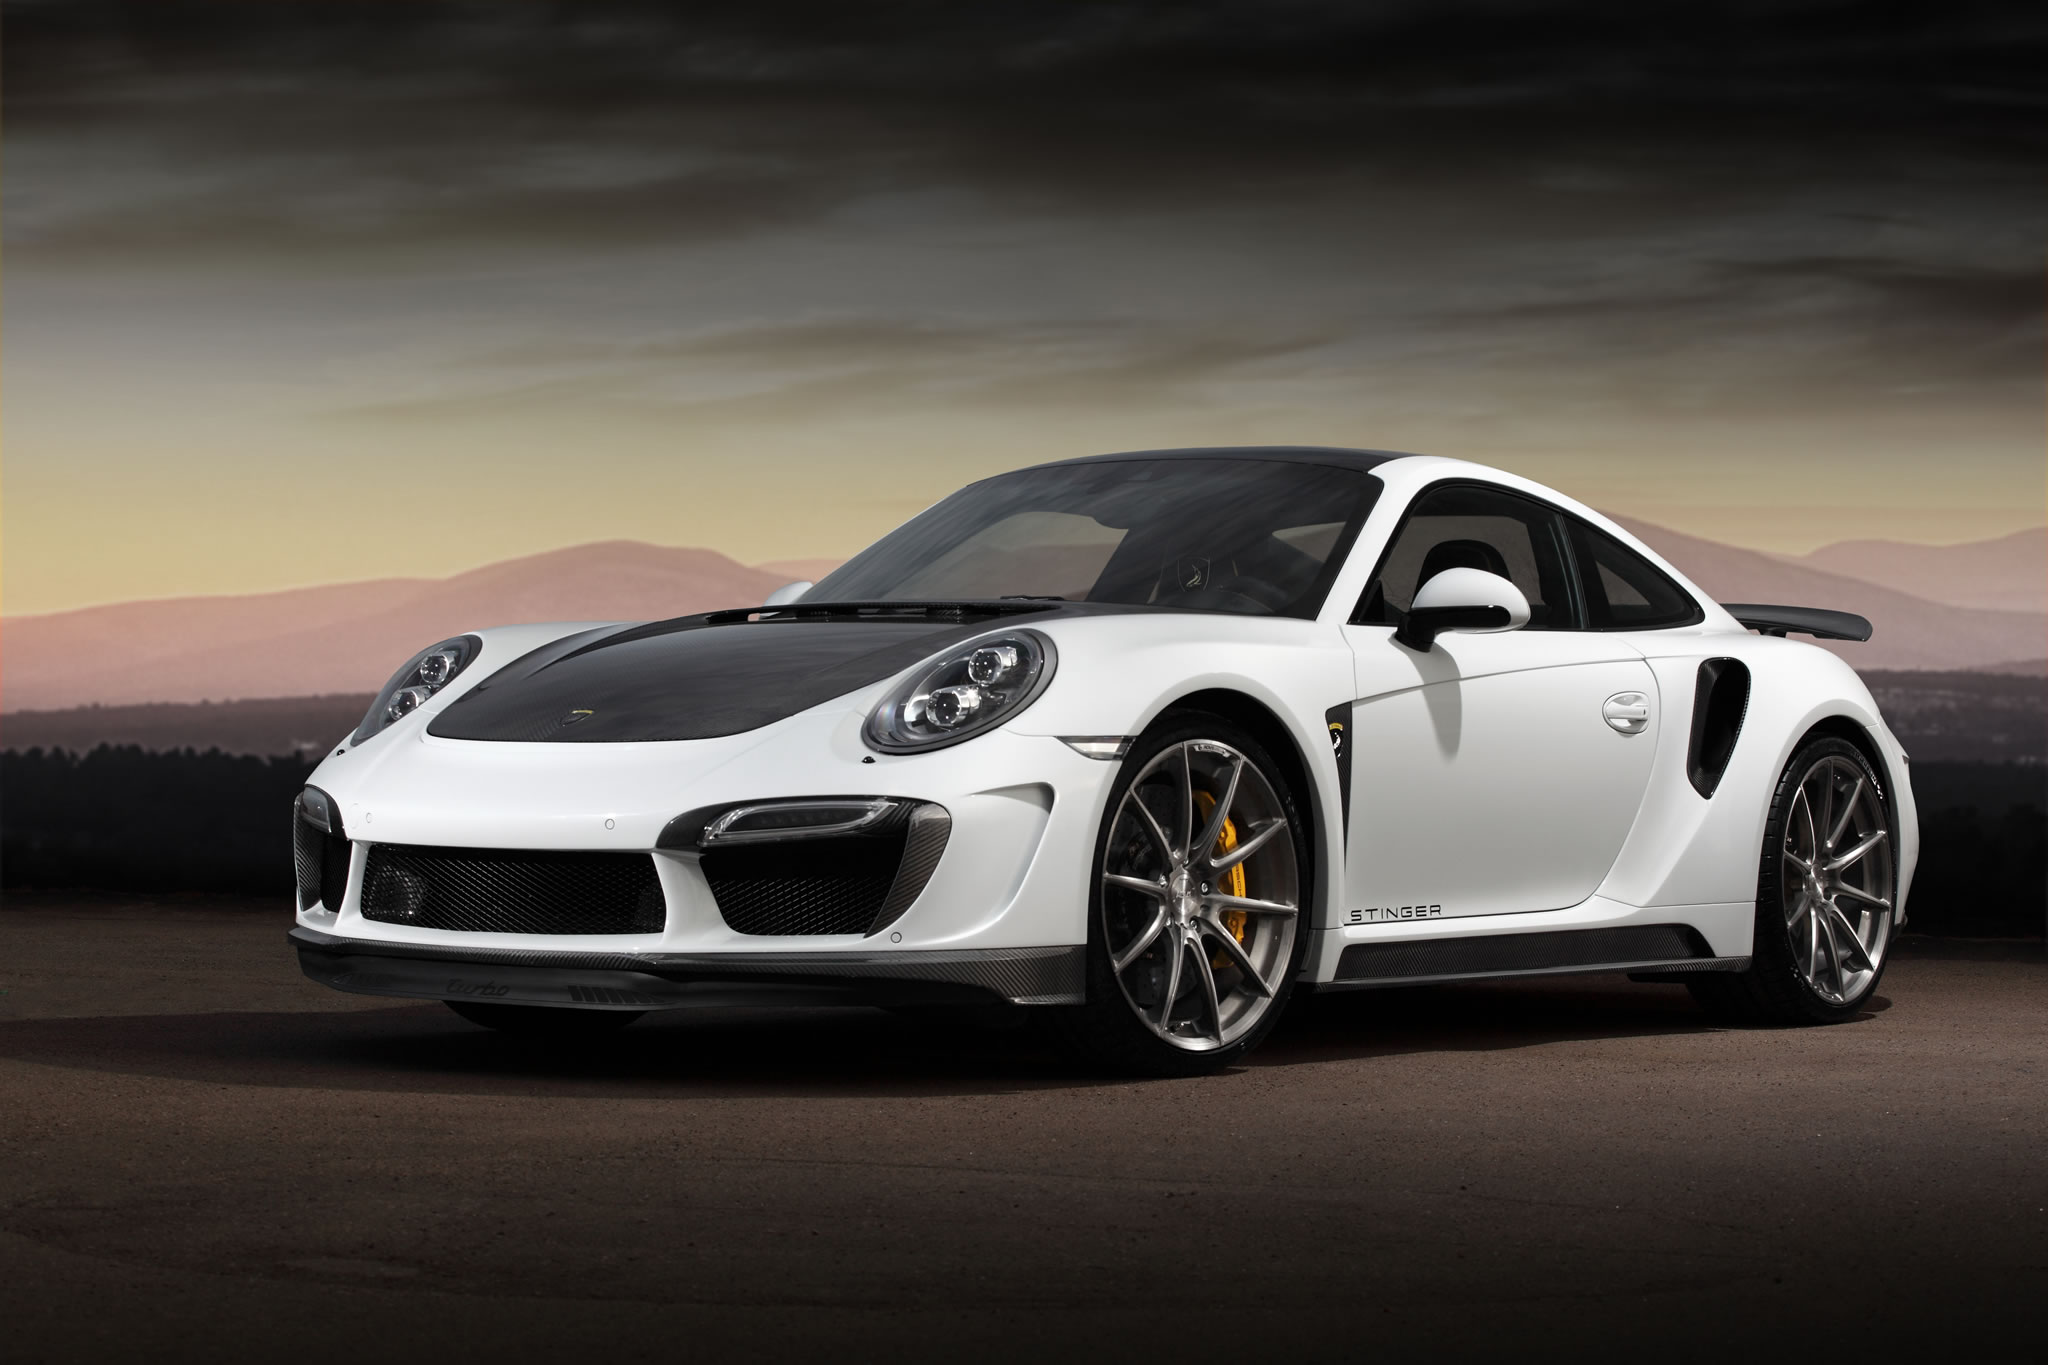 2015 porsche 911 turbo s stinger gtr by topcar front photo white color size 2048 x 1365 nr. Black Bedroom Furniture Sets. Home Design Ideas